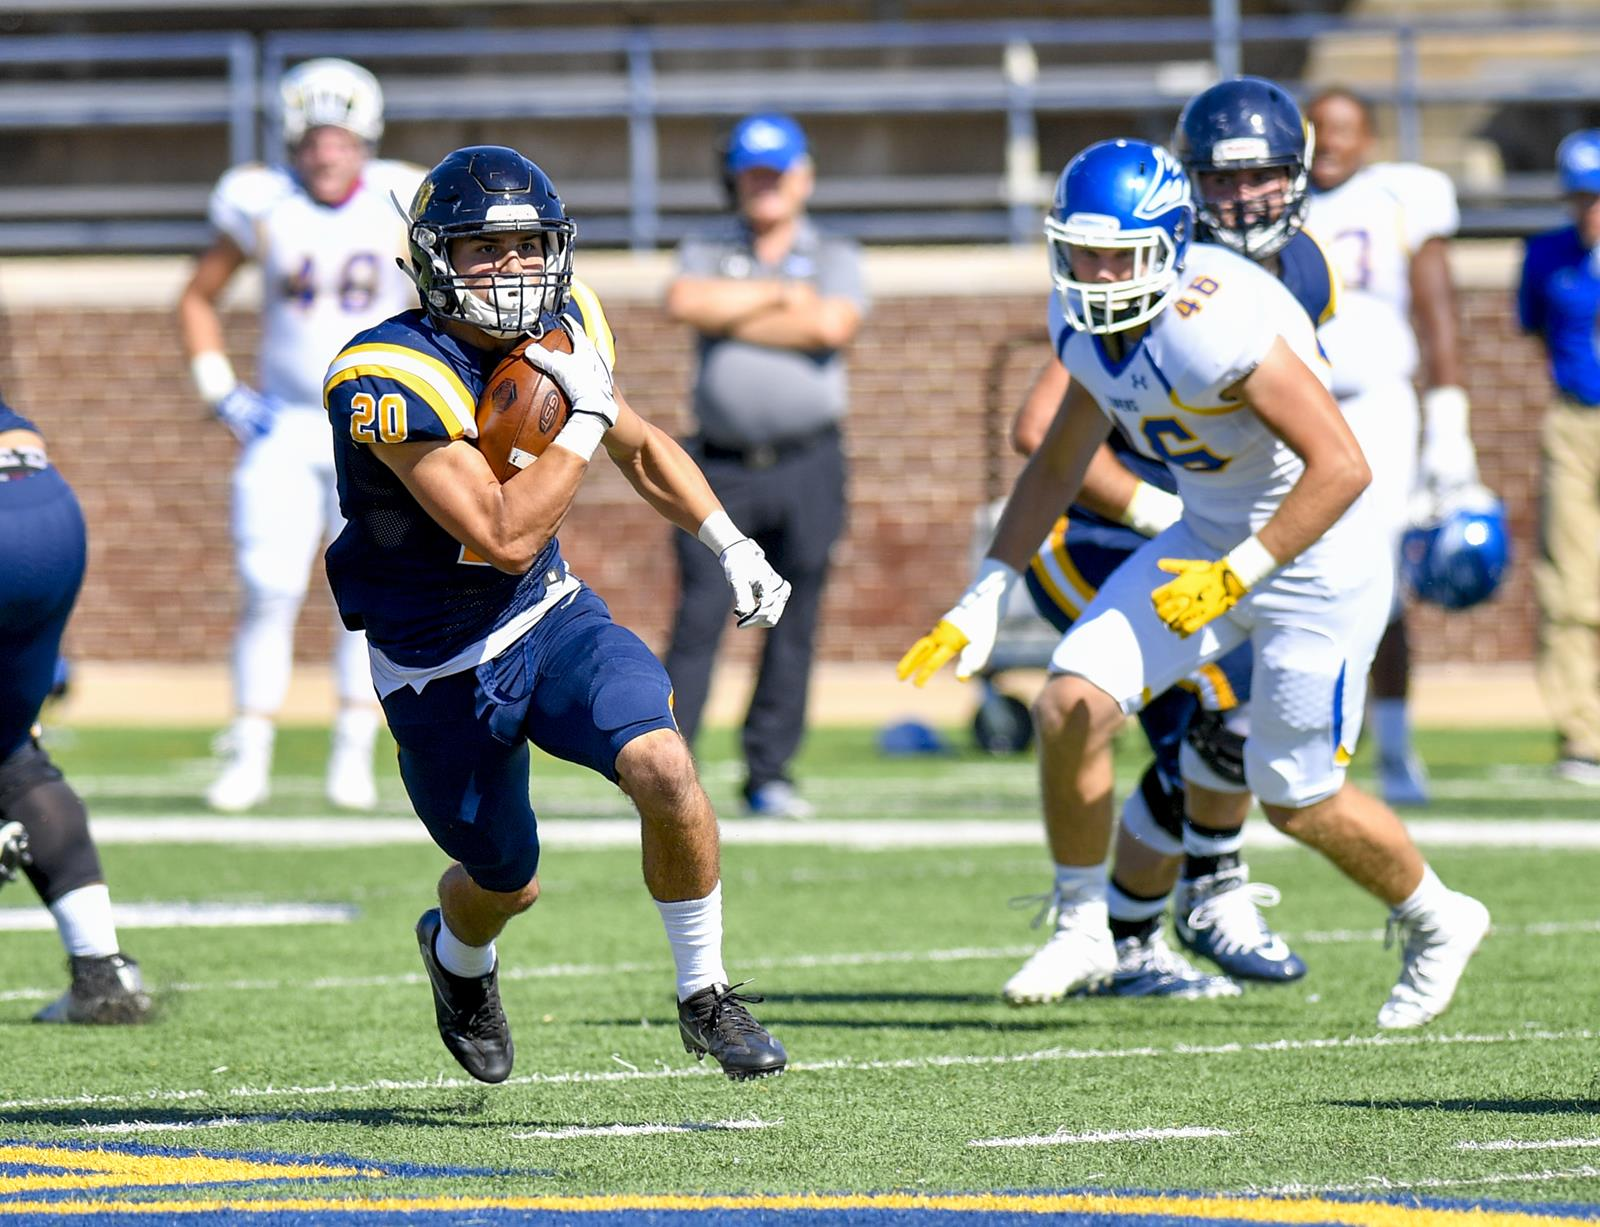 Bronchos Blast Missouri Southern University Of Central Oklahoma